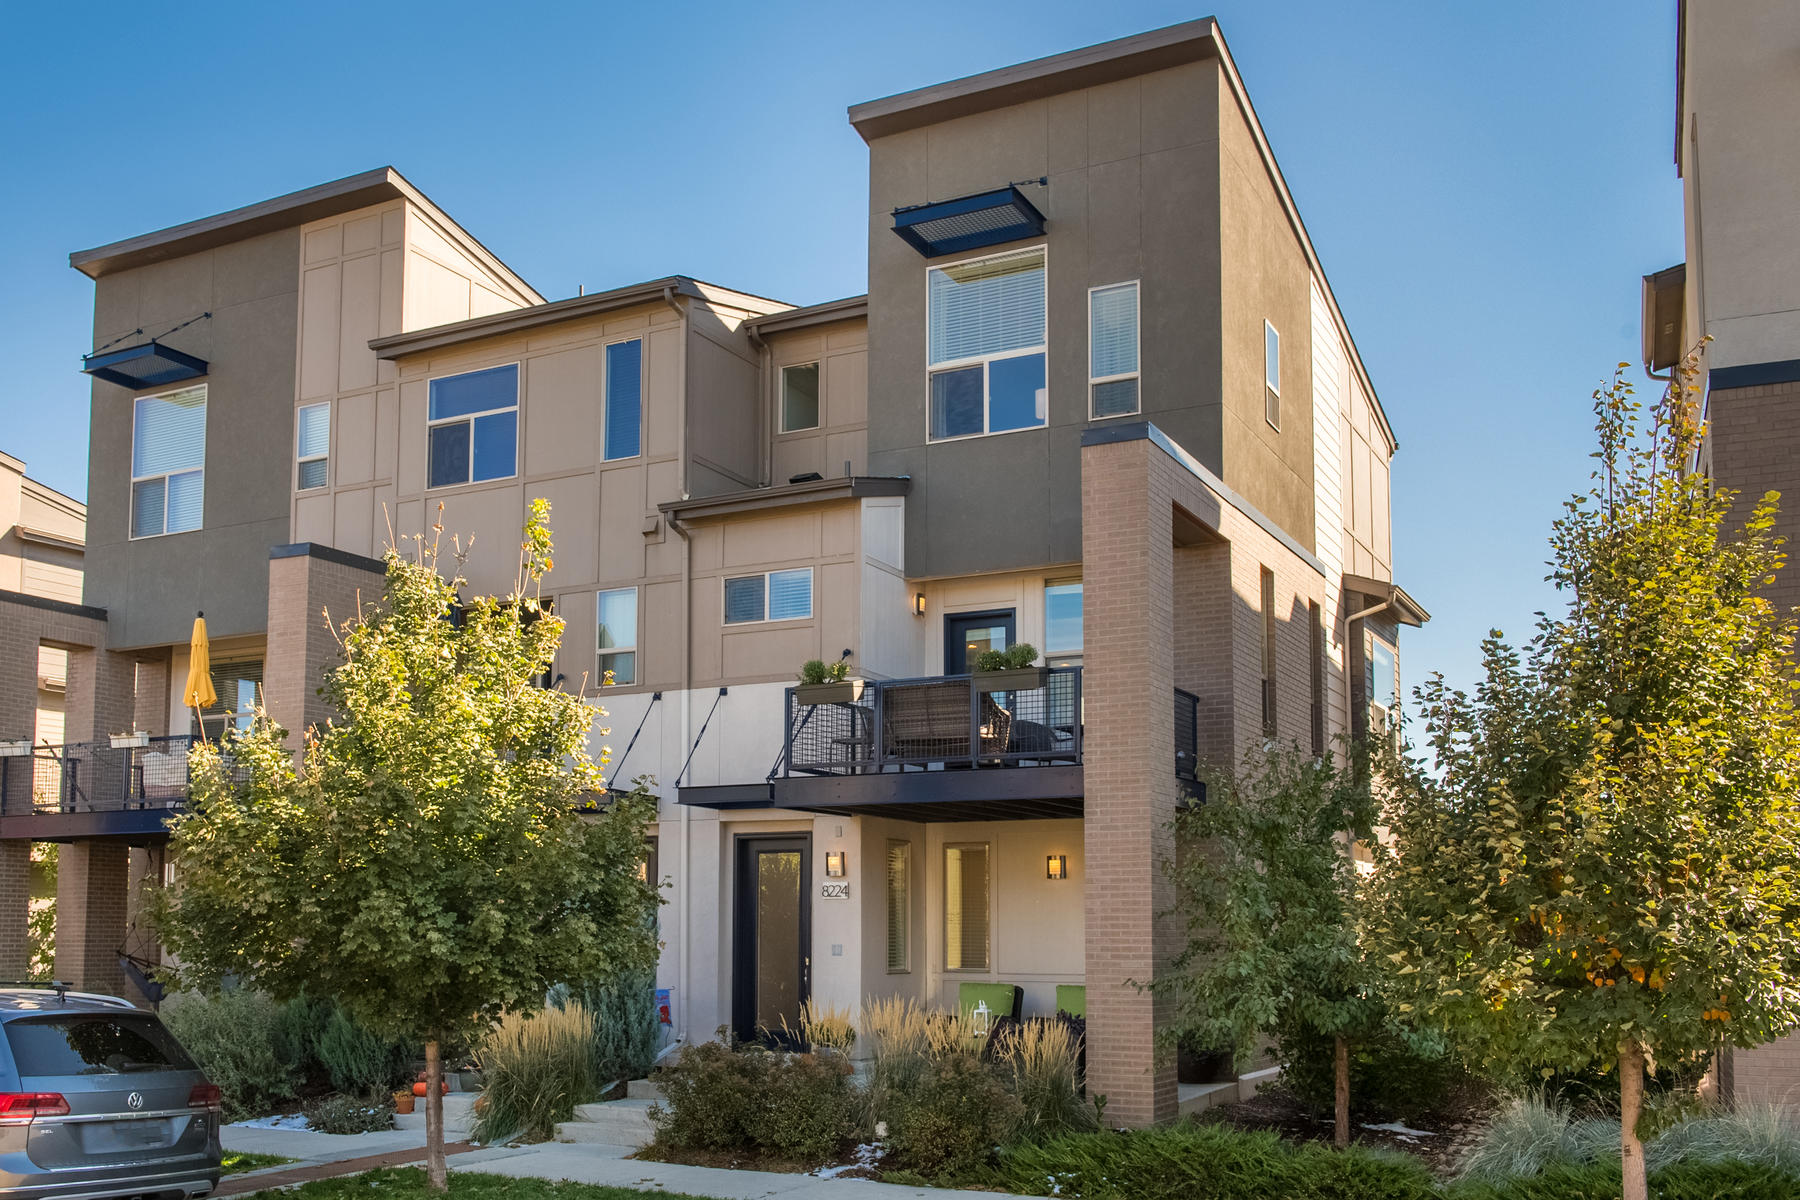 Property for Active at Walk Into The Light Of This Spacious And Contemporary Corner-Unit Townhouse 8224 E 24th Dr Denver, Colorado 80238 United States